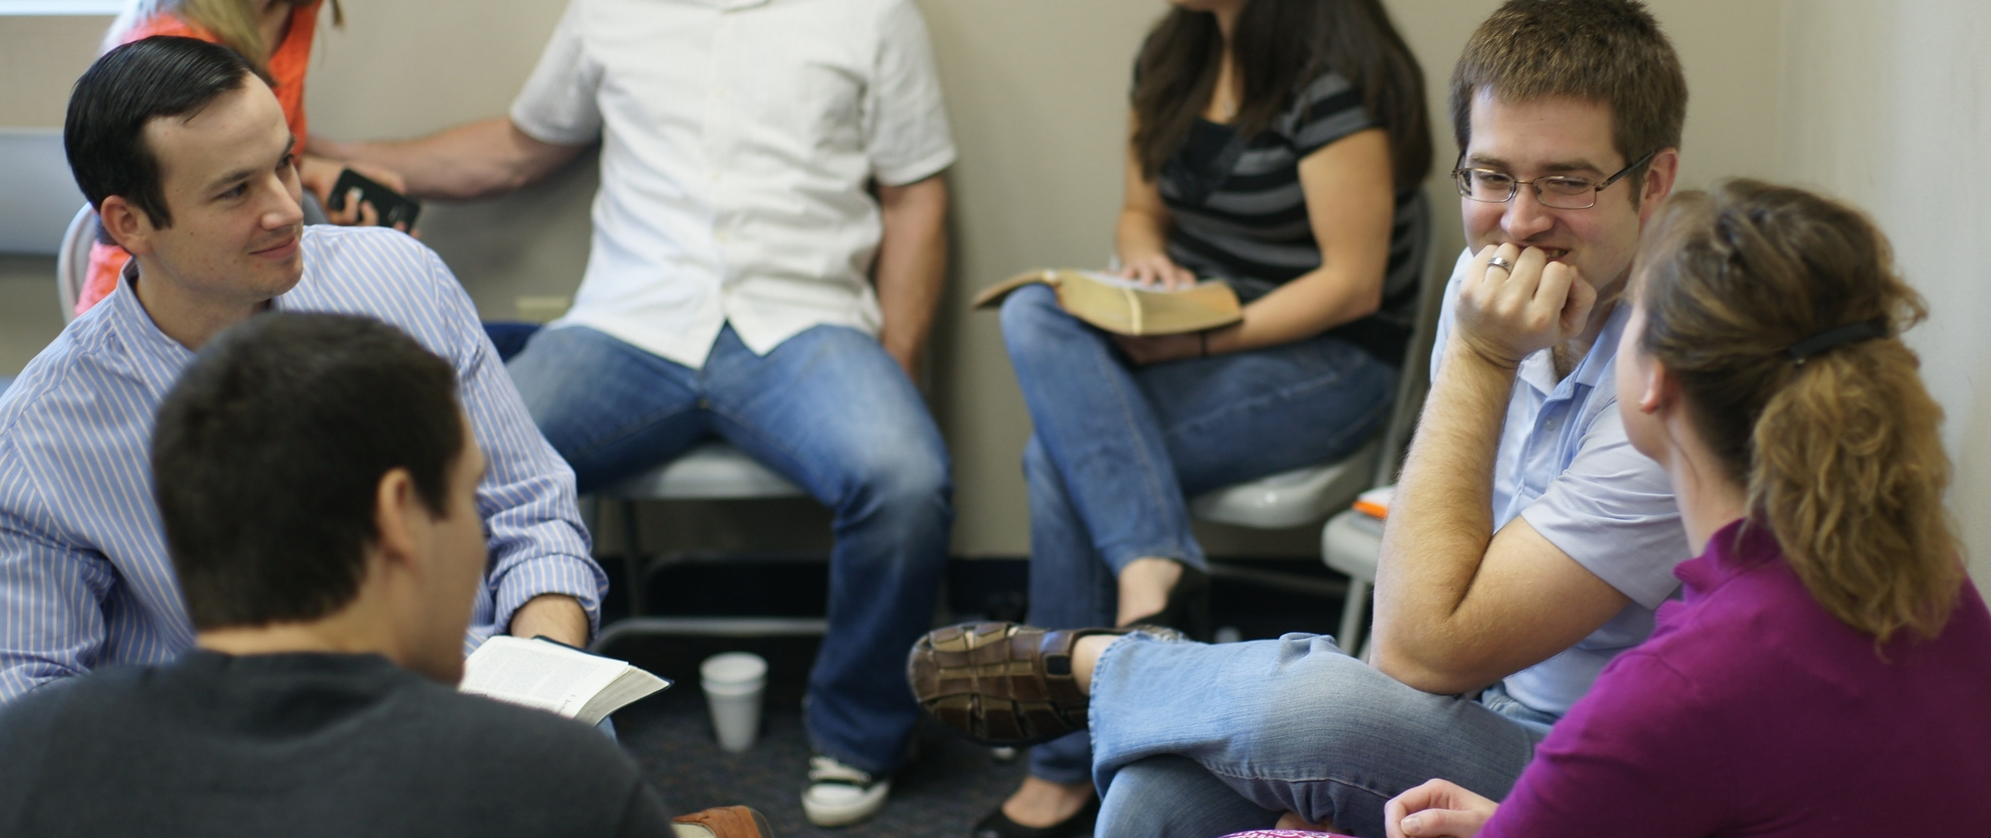 Growth Groups at Hulen Street Church in Fort Worth, TX